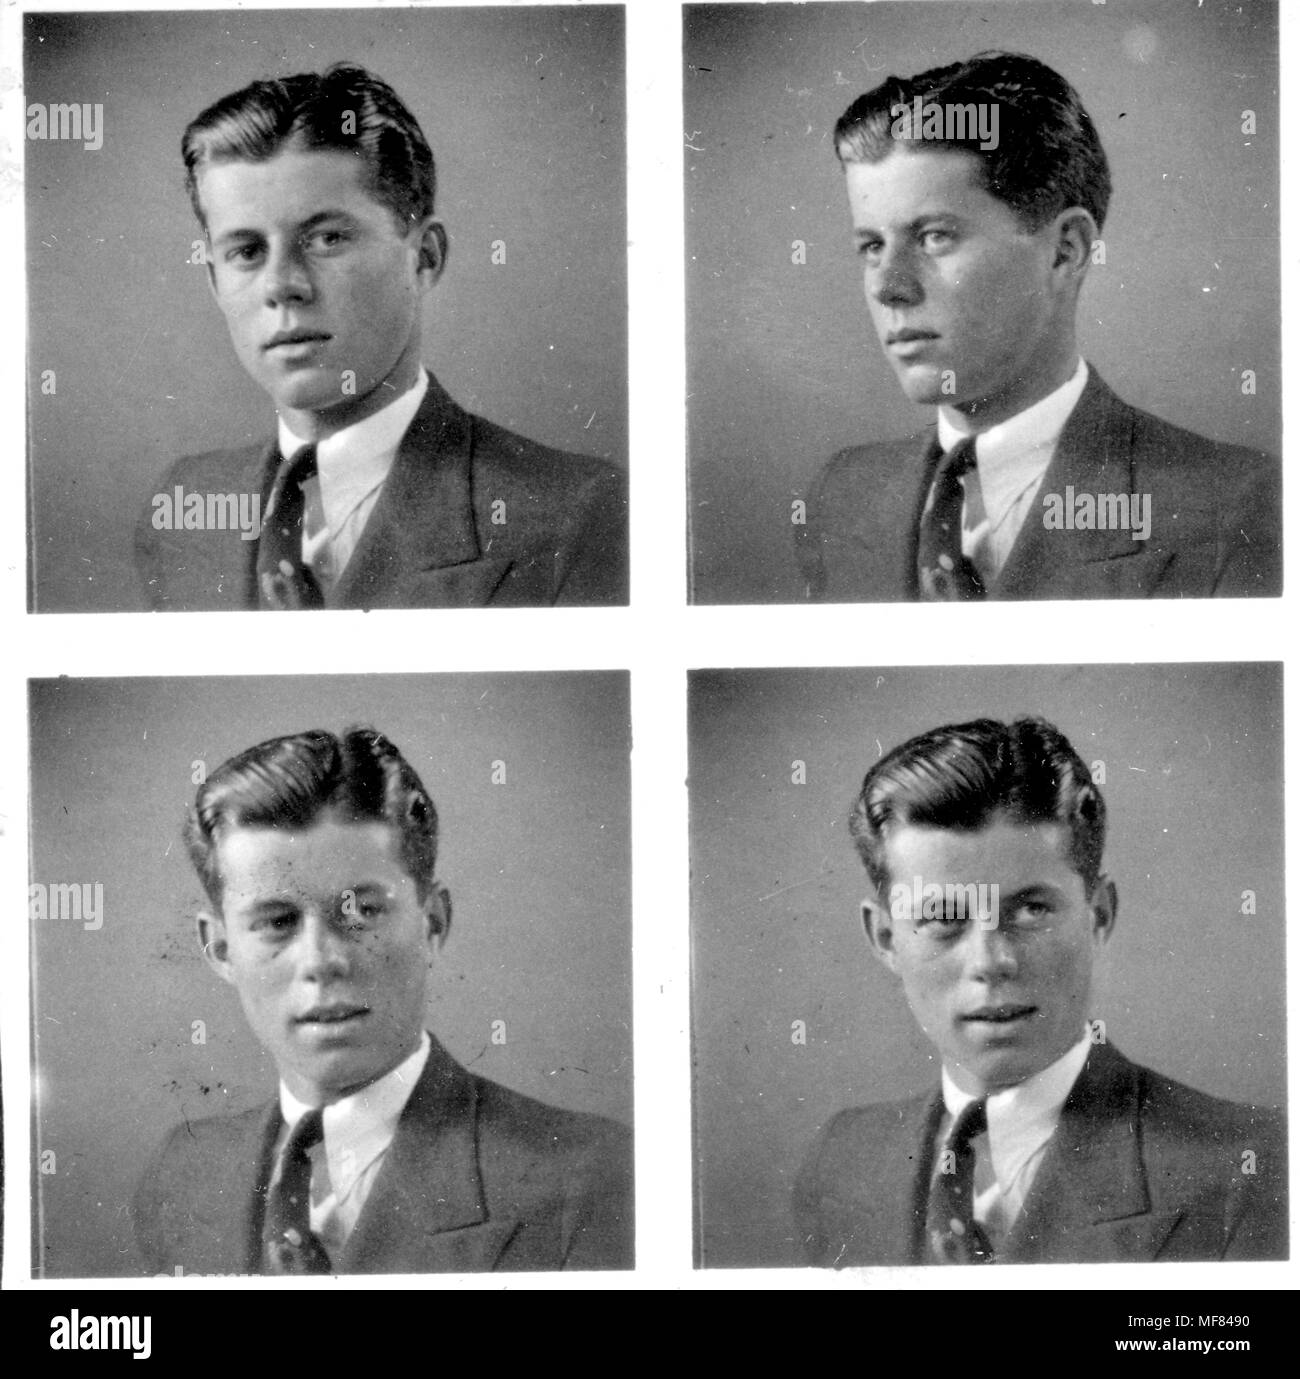 PX81-32:143    c. 1935  Four pictures of John F. Kennedy at age 18 posing for a portrait photograph.  Please Credit:'John F. Kennedy Presidential Library and Museum, Boston' - Stock Image